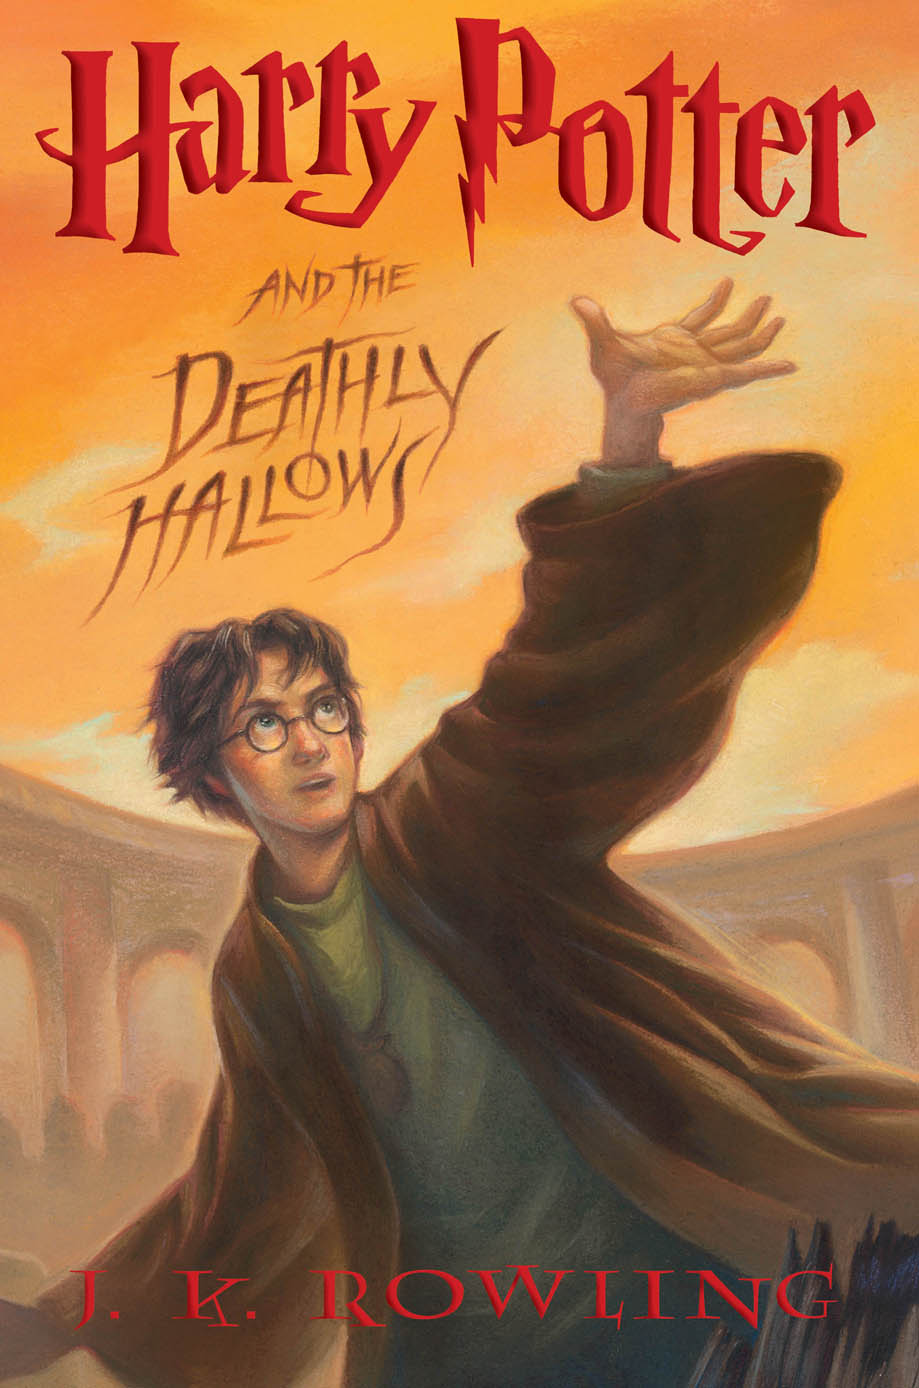 Image result for the deathly hallows book cover